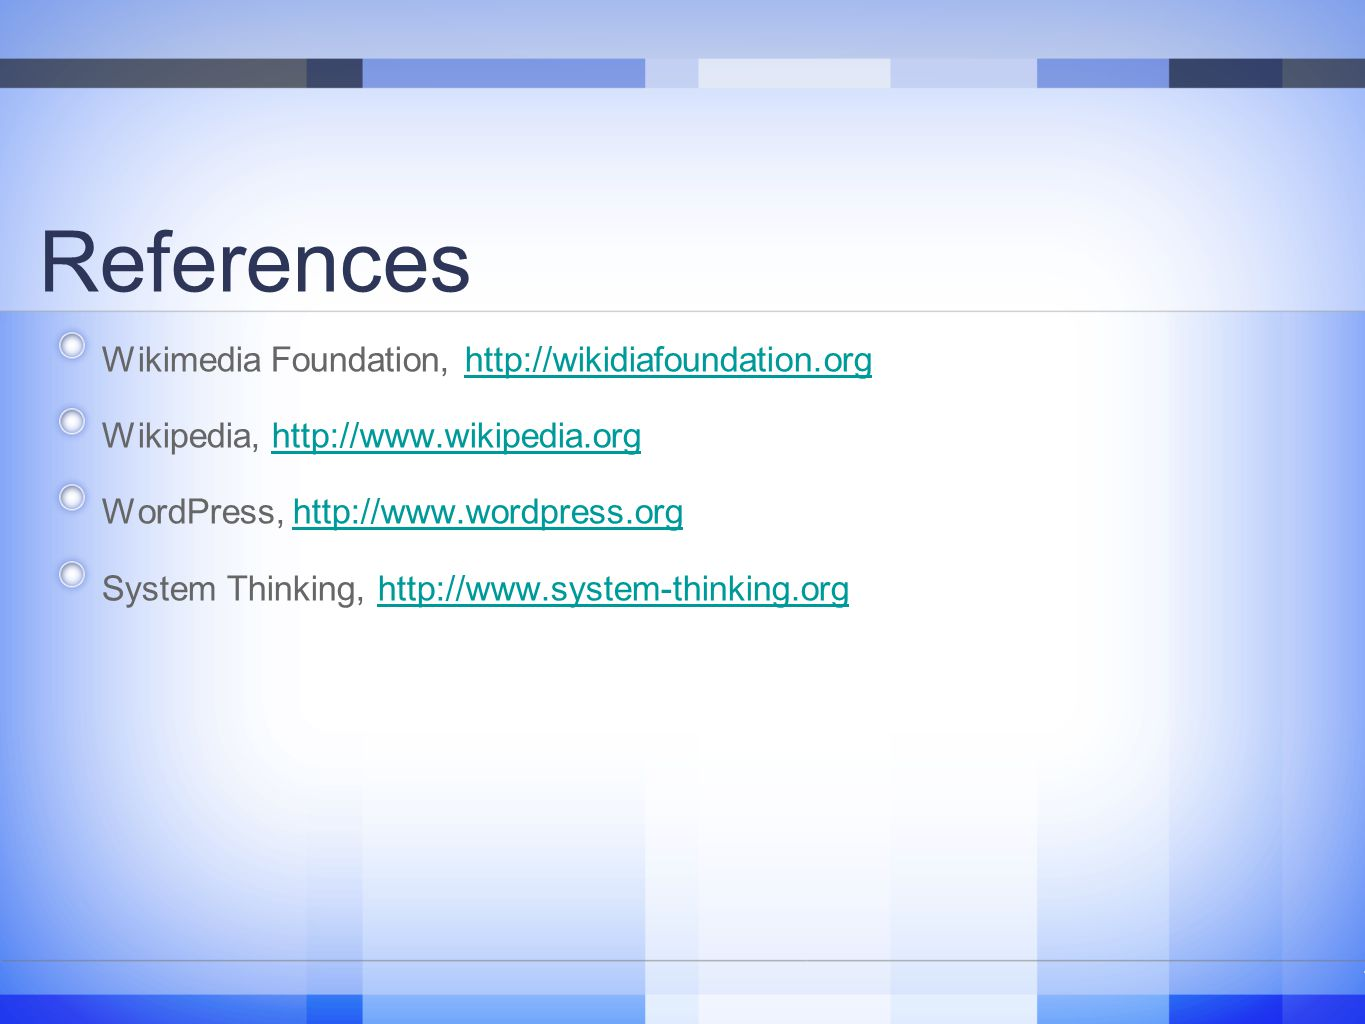 References Wikimedia Foundation, http://wikidiafoundation.orghttp://wikidiafoundation.org Wikipedia, http://www.wikipedia.orghttp://www.wikipedia.org WordPress, http://www.wordpress.orghttp://www.wordpress.org System Thinking, http://www.system-thinking.orghttp://www.system-thinking.org 16